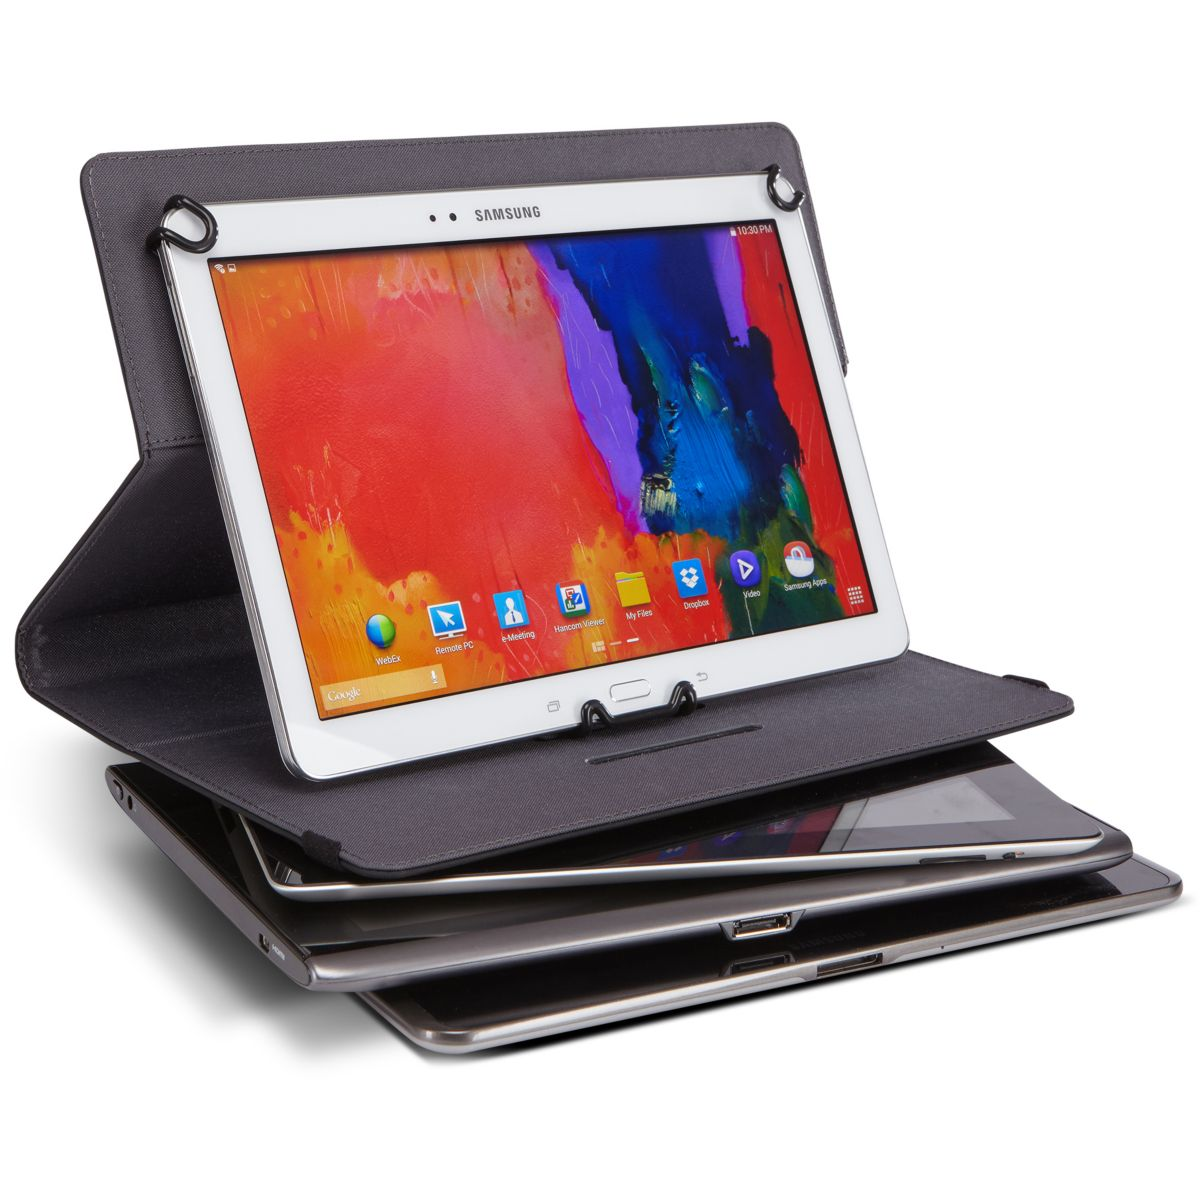 Folio caselogic tablette 9-10'' noir - 20% de remise immédiate avec le code : cool20 (photo)